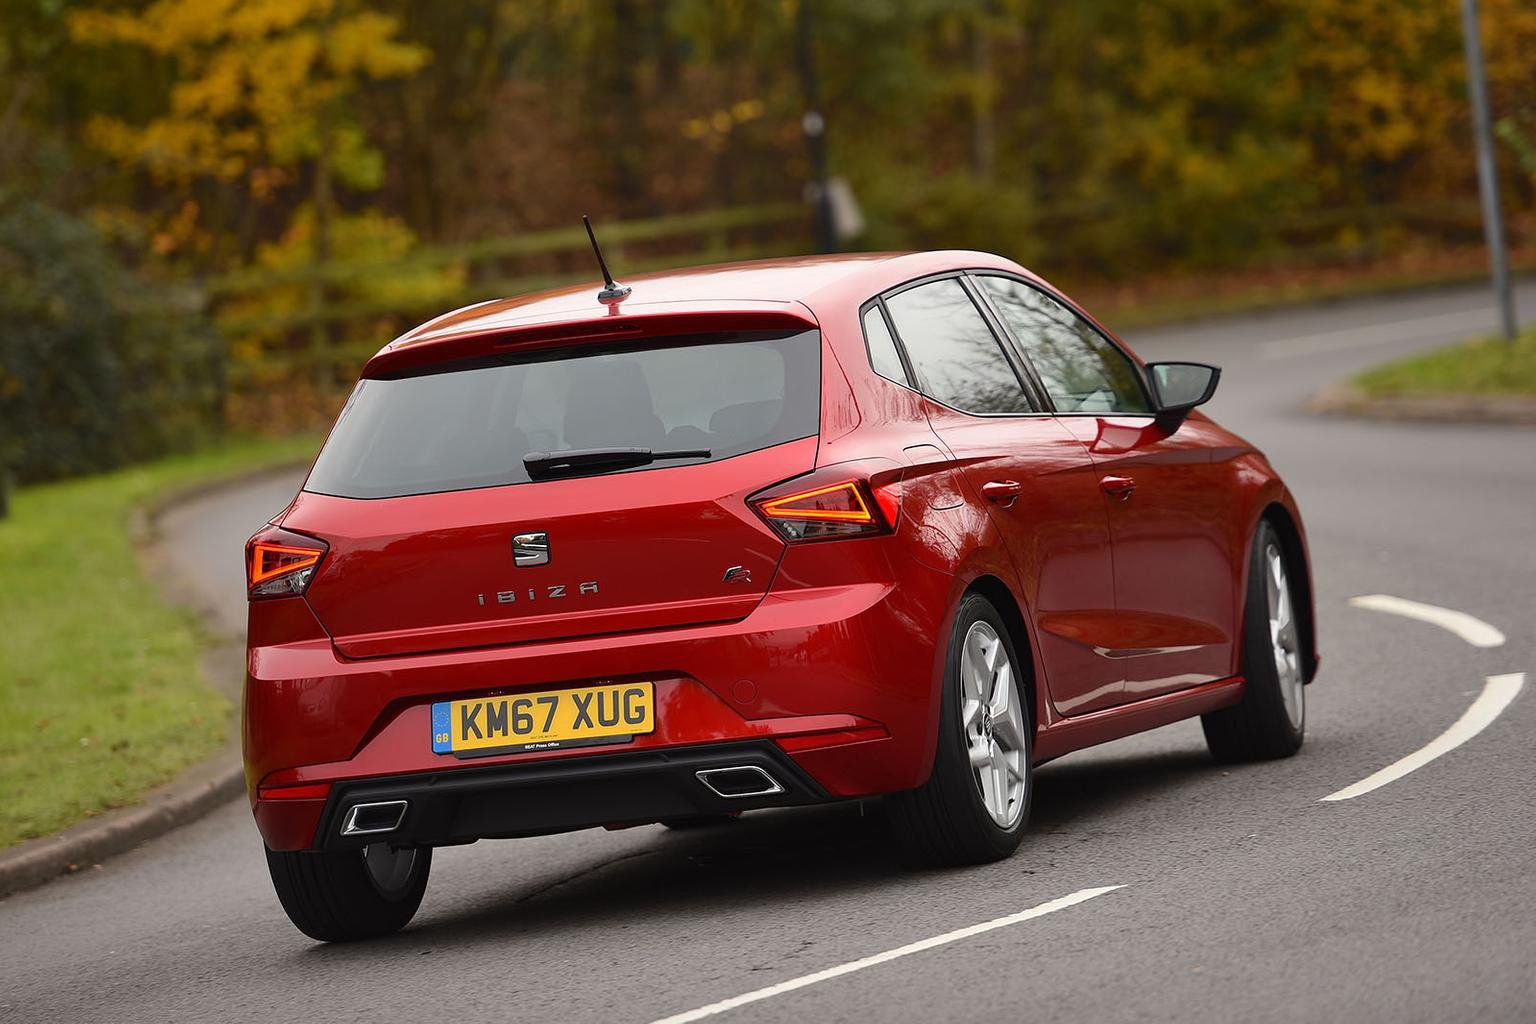 2017 Seat Ibiza 1.5 TSI 150 Evo FR review - price, specs and release date